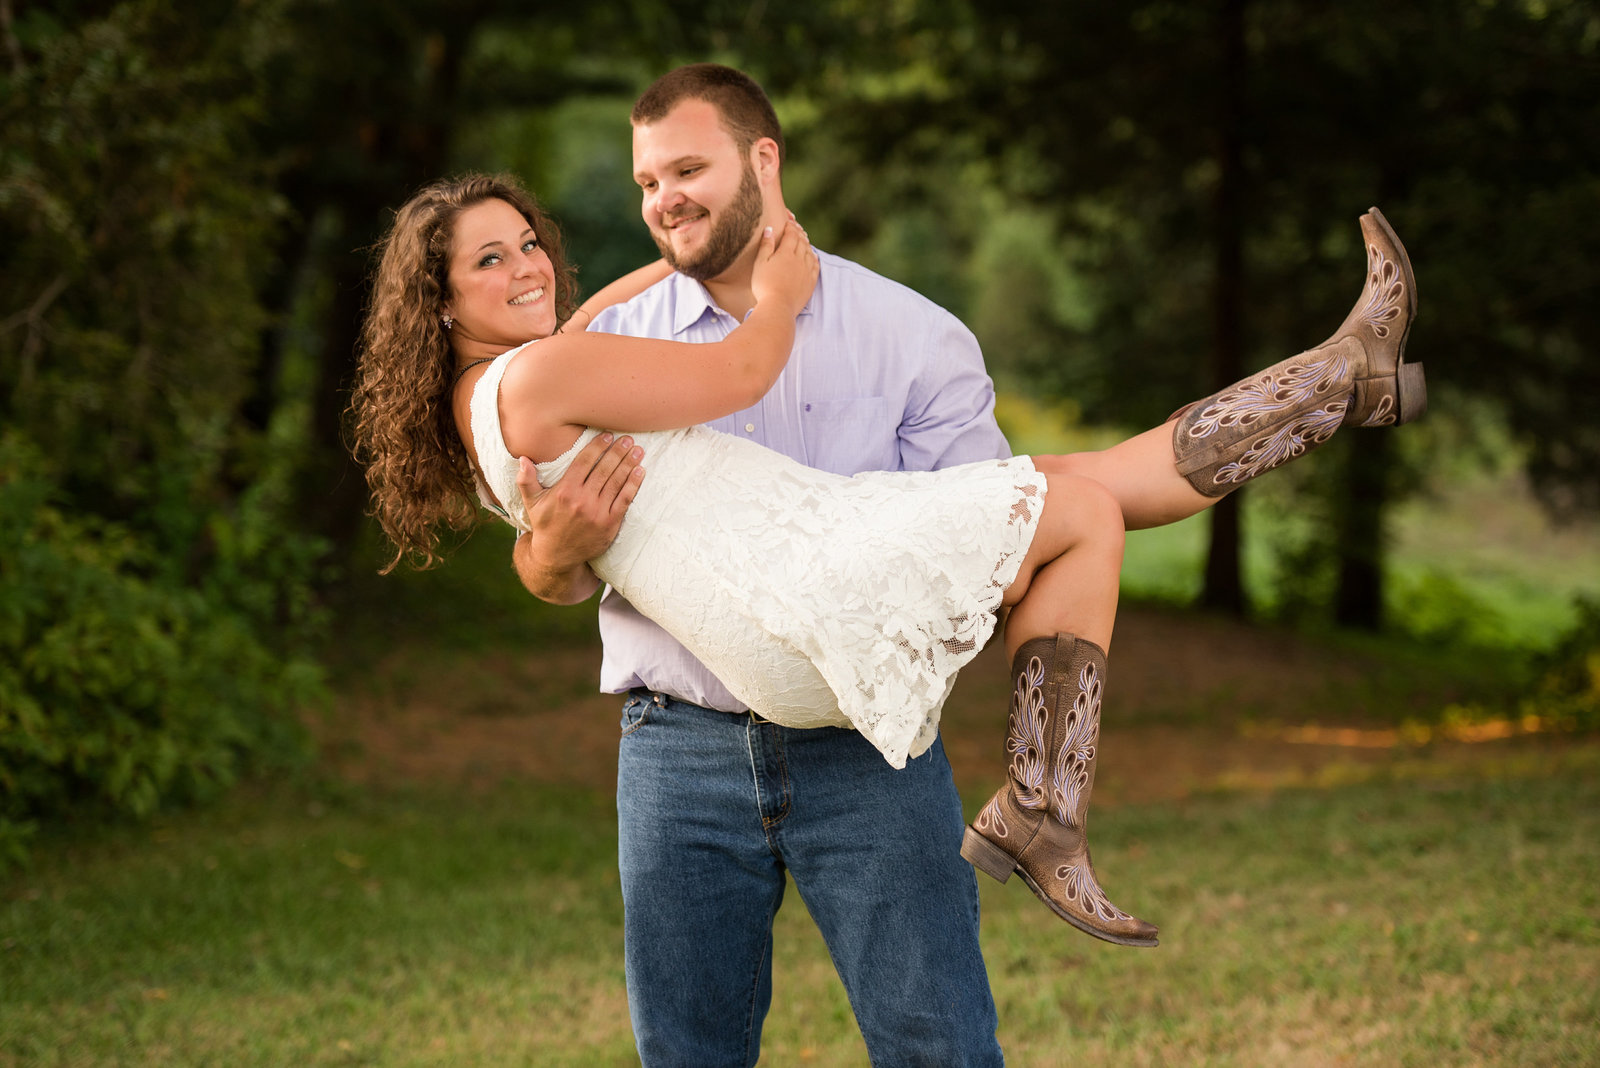 NJ_Rustic_Engagement_Photography140